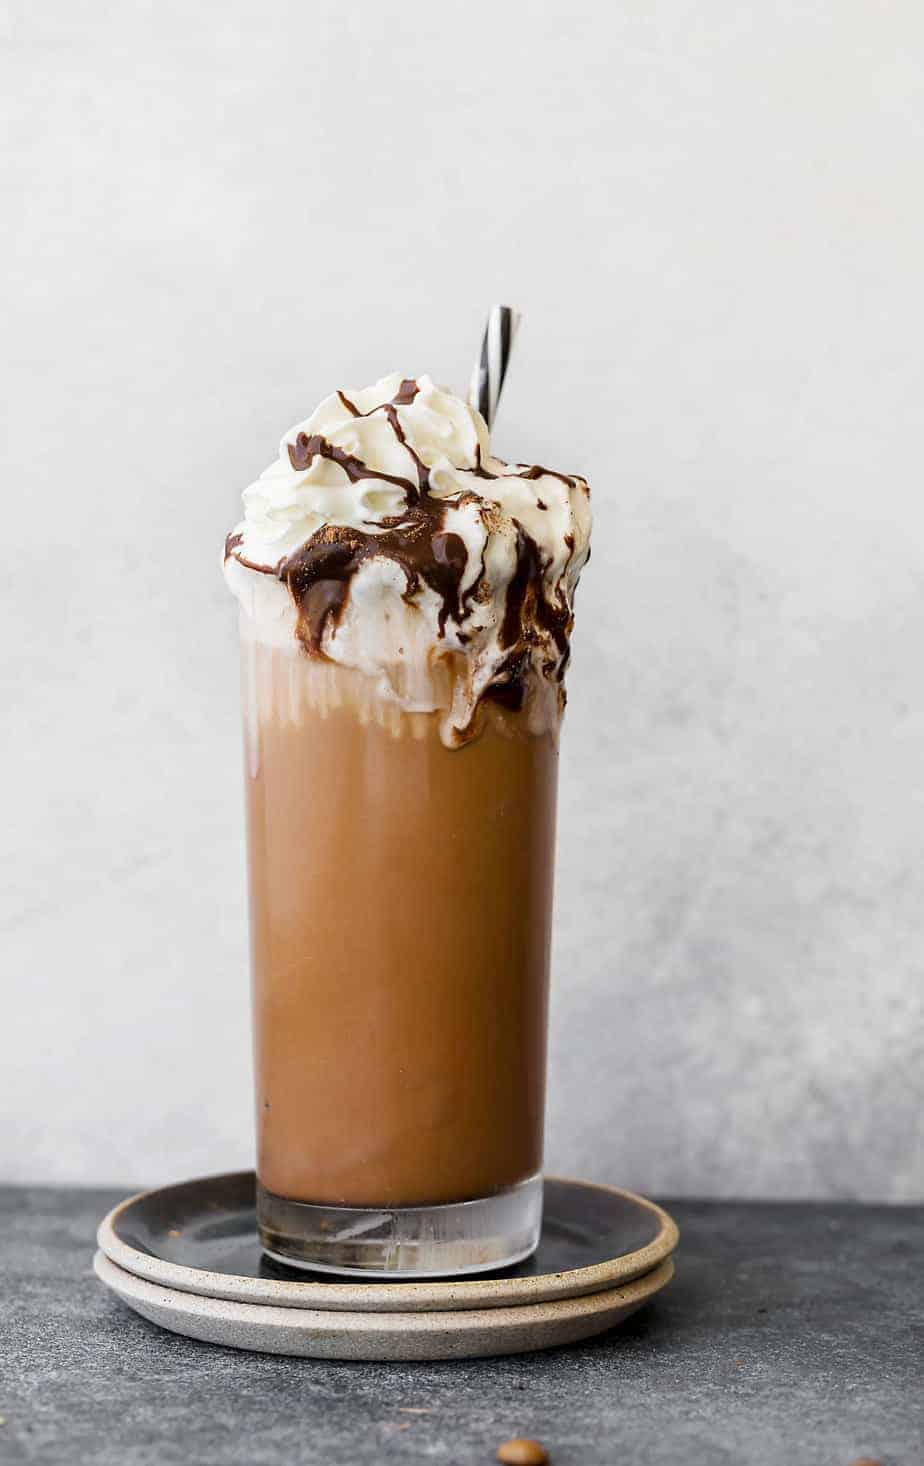 Learn how to make an iced coffee mocha recipe at home. Brewed coffee served with homemade chocolate syrup, ice, and whipped cream.